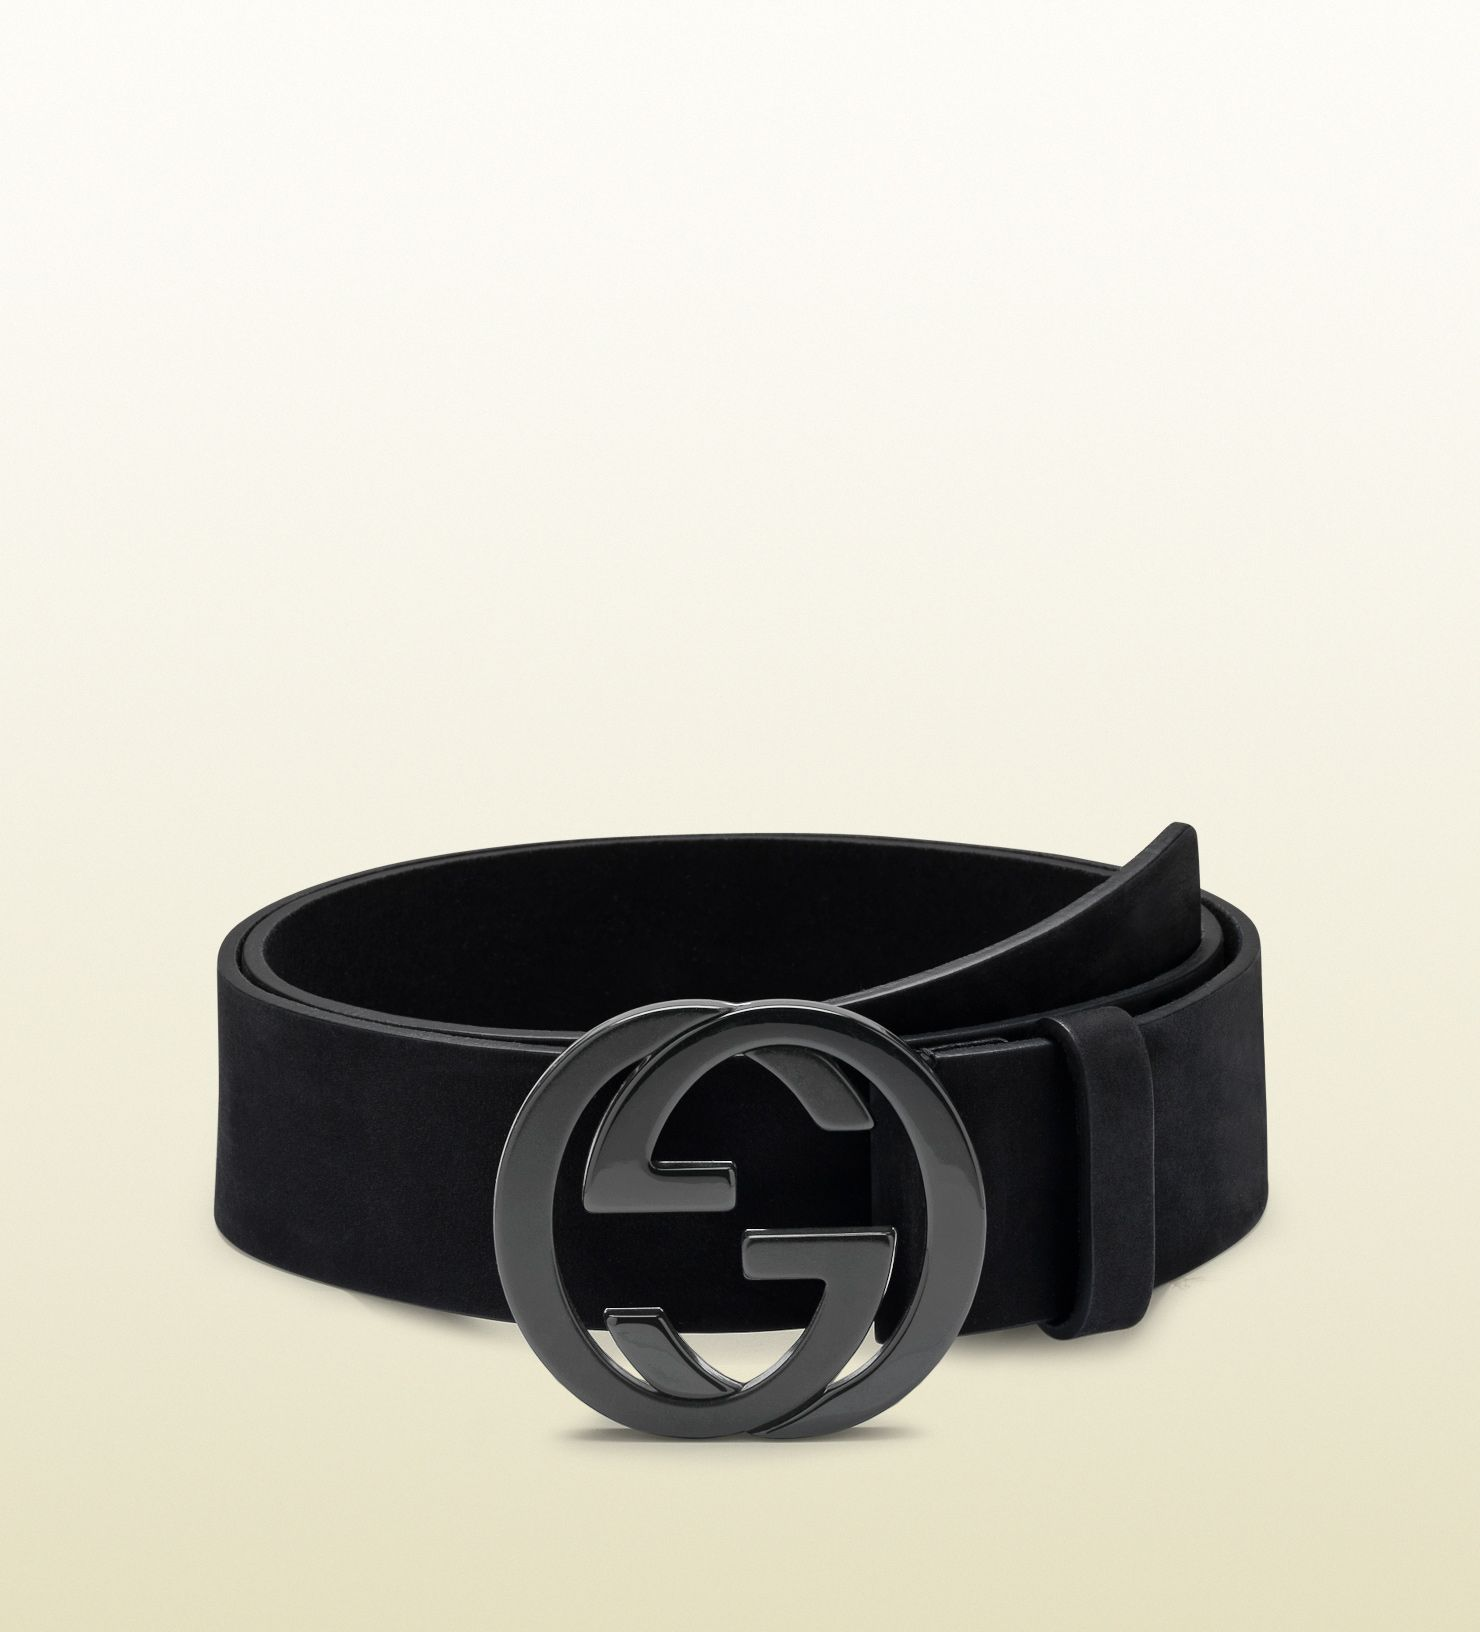 3721c7eccd6 This belt features a sleek rectangular buckle and a squared end with an  embossed logo.